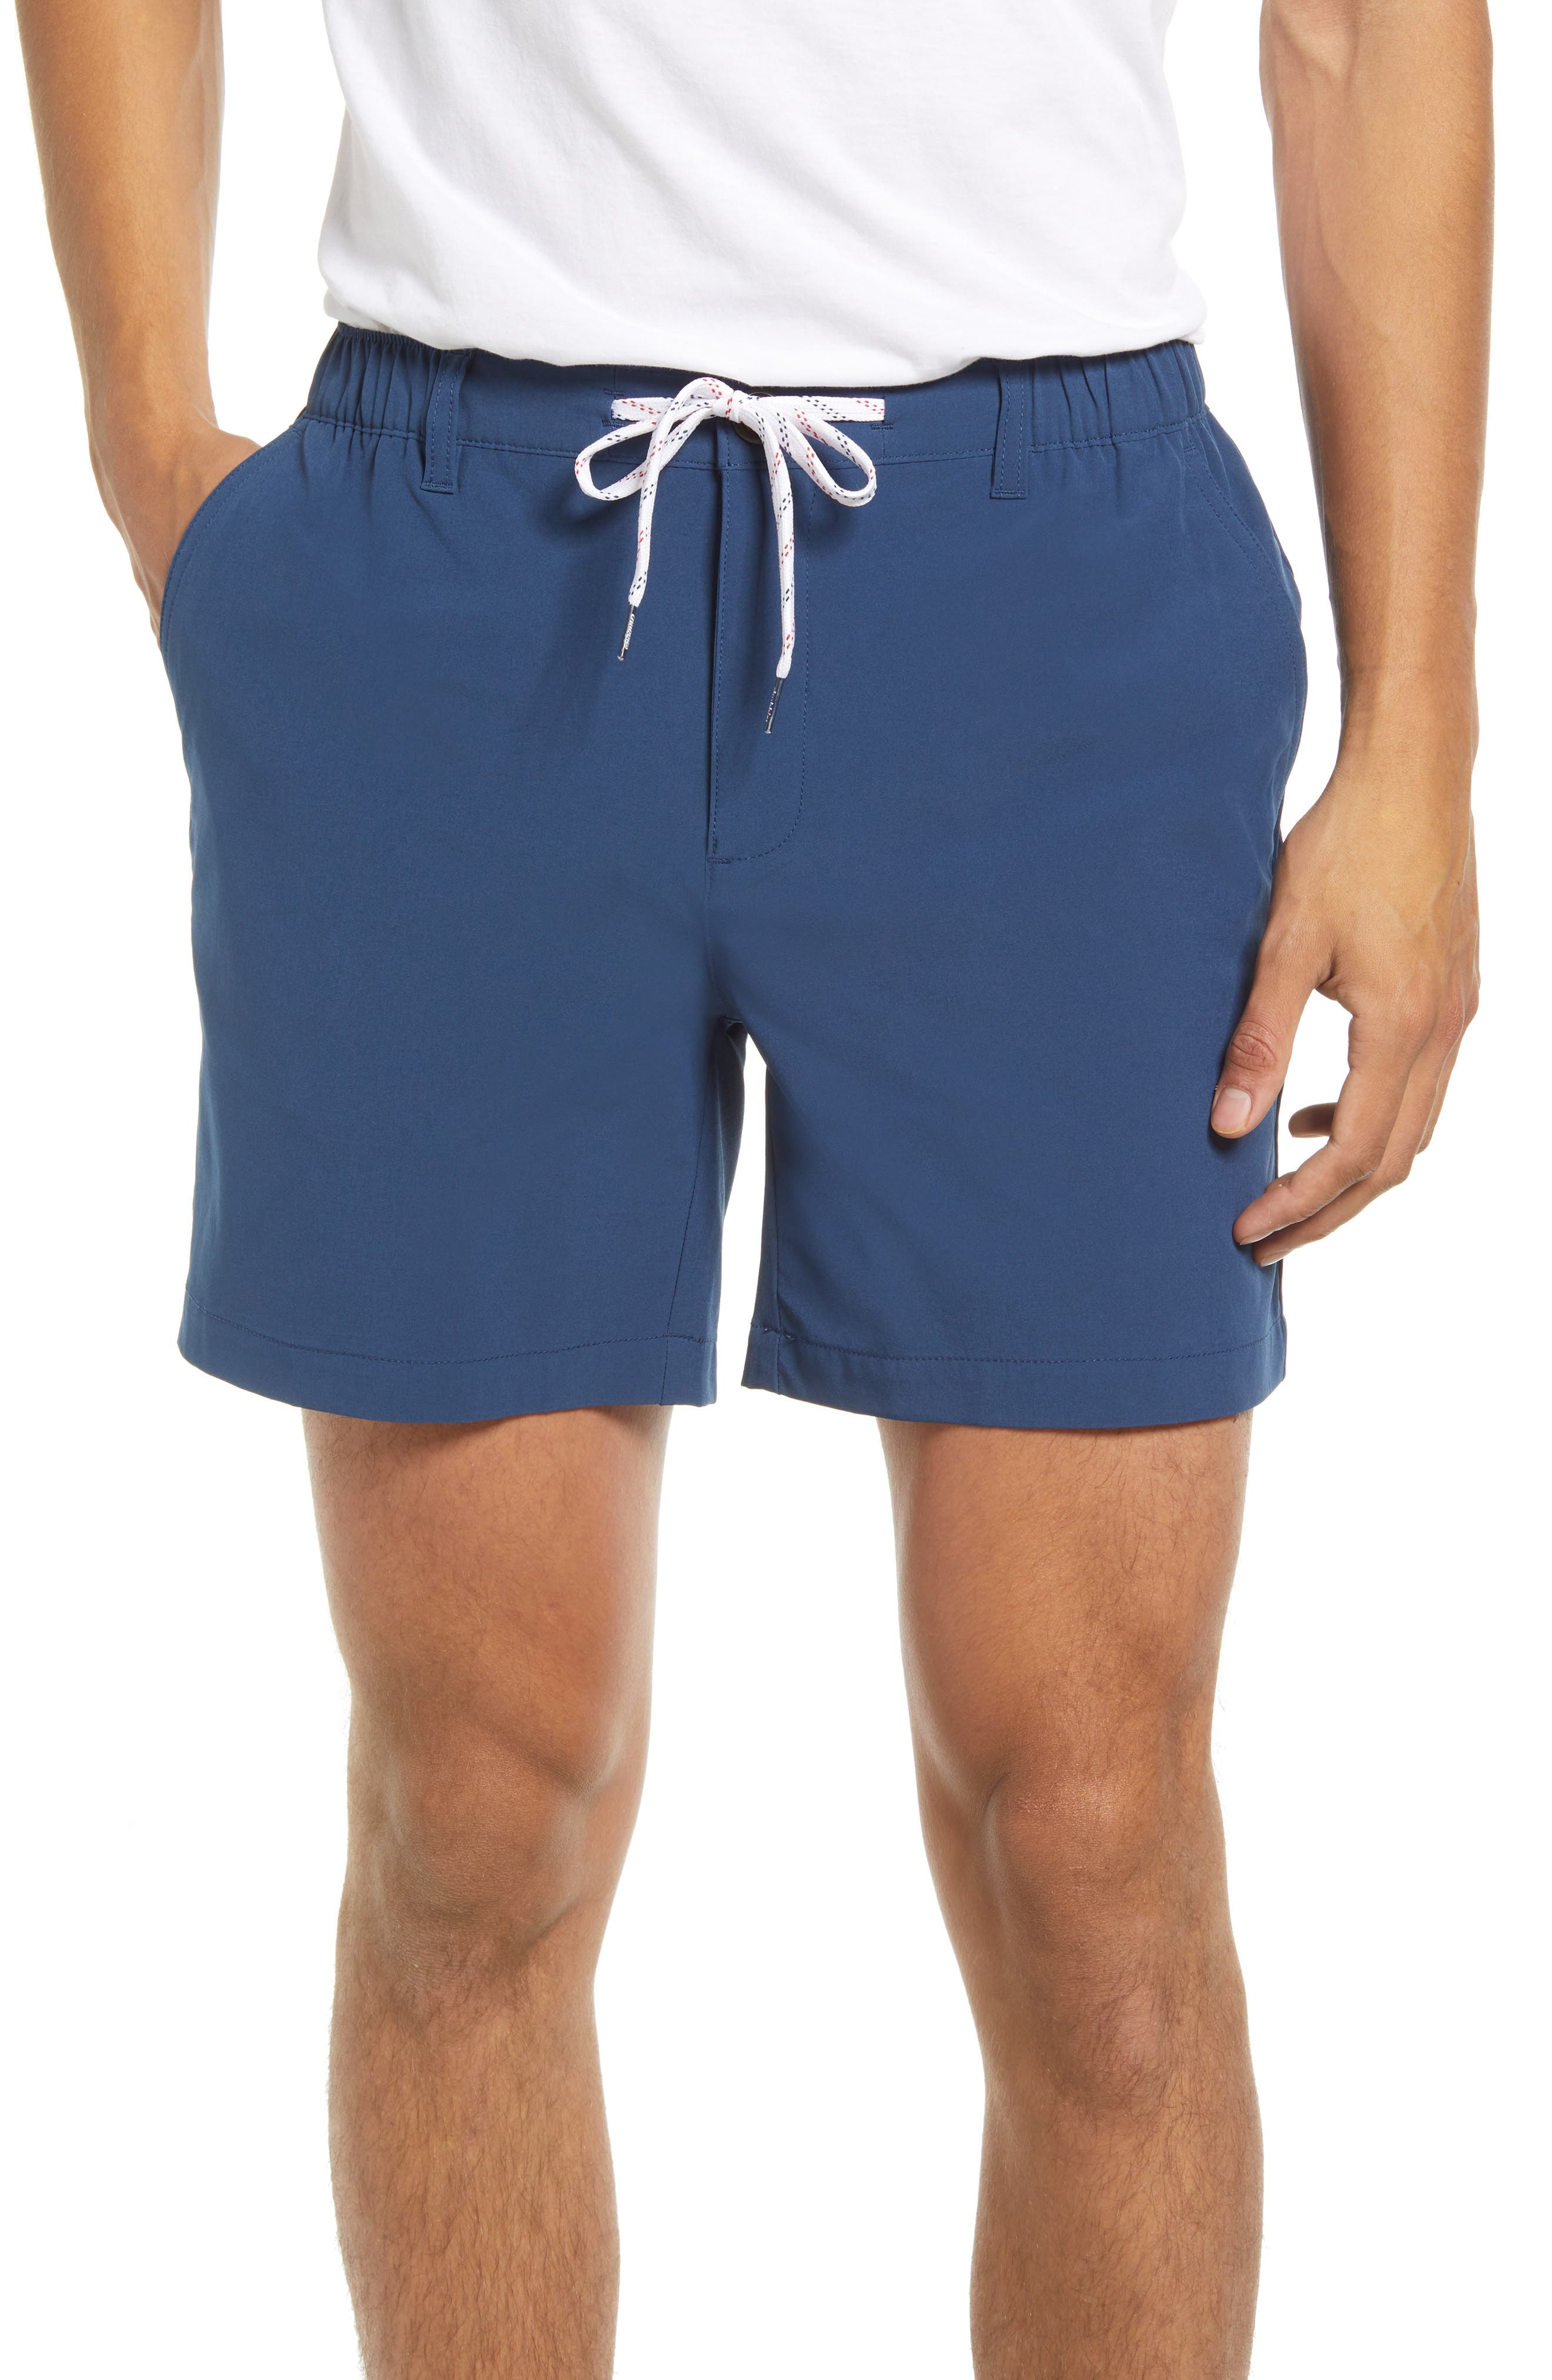 The New Avenues Water Resistant Hybrid Shorts